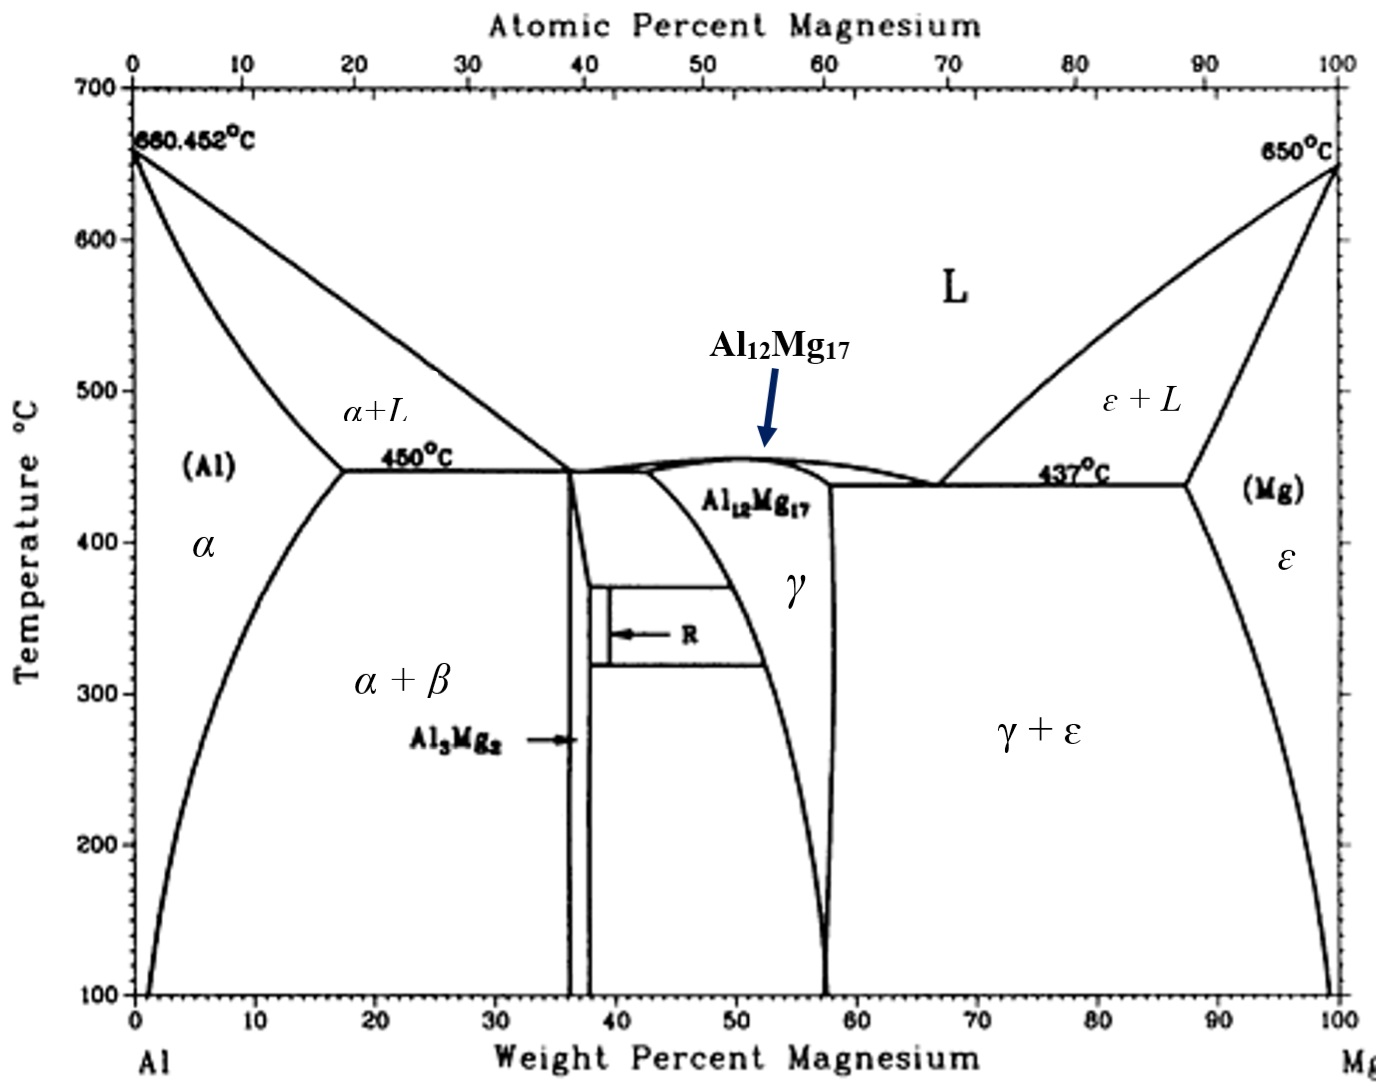 Binary Phase Diagram.Solved For This Al Mg Binary Phase Diagram At 7 Al Allo